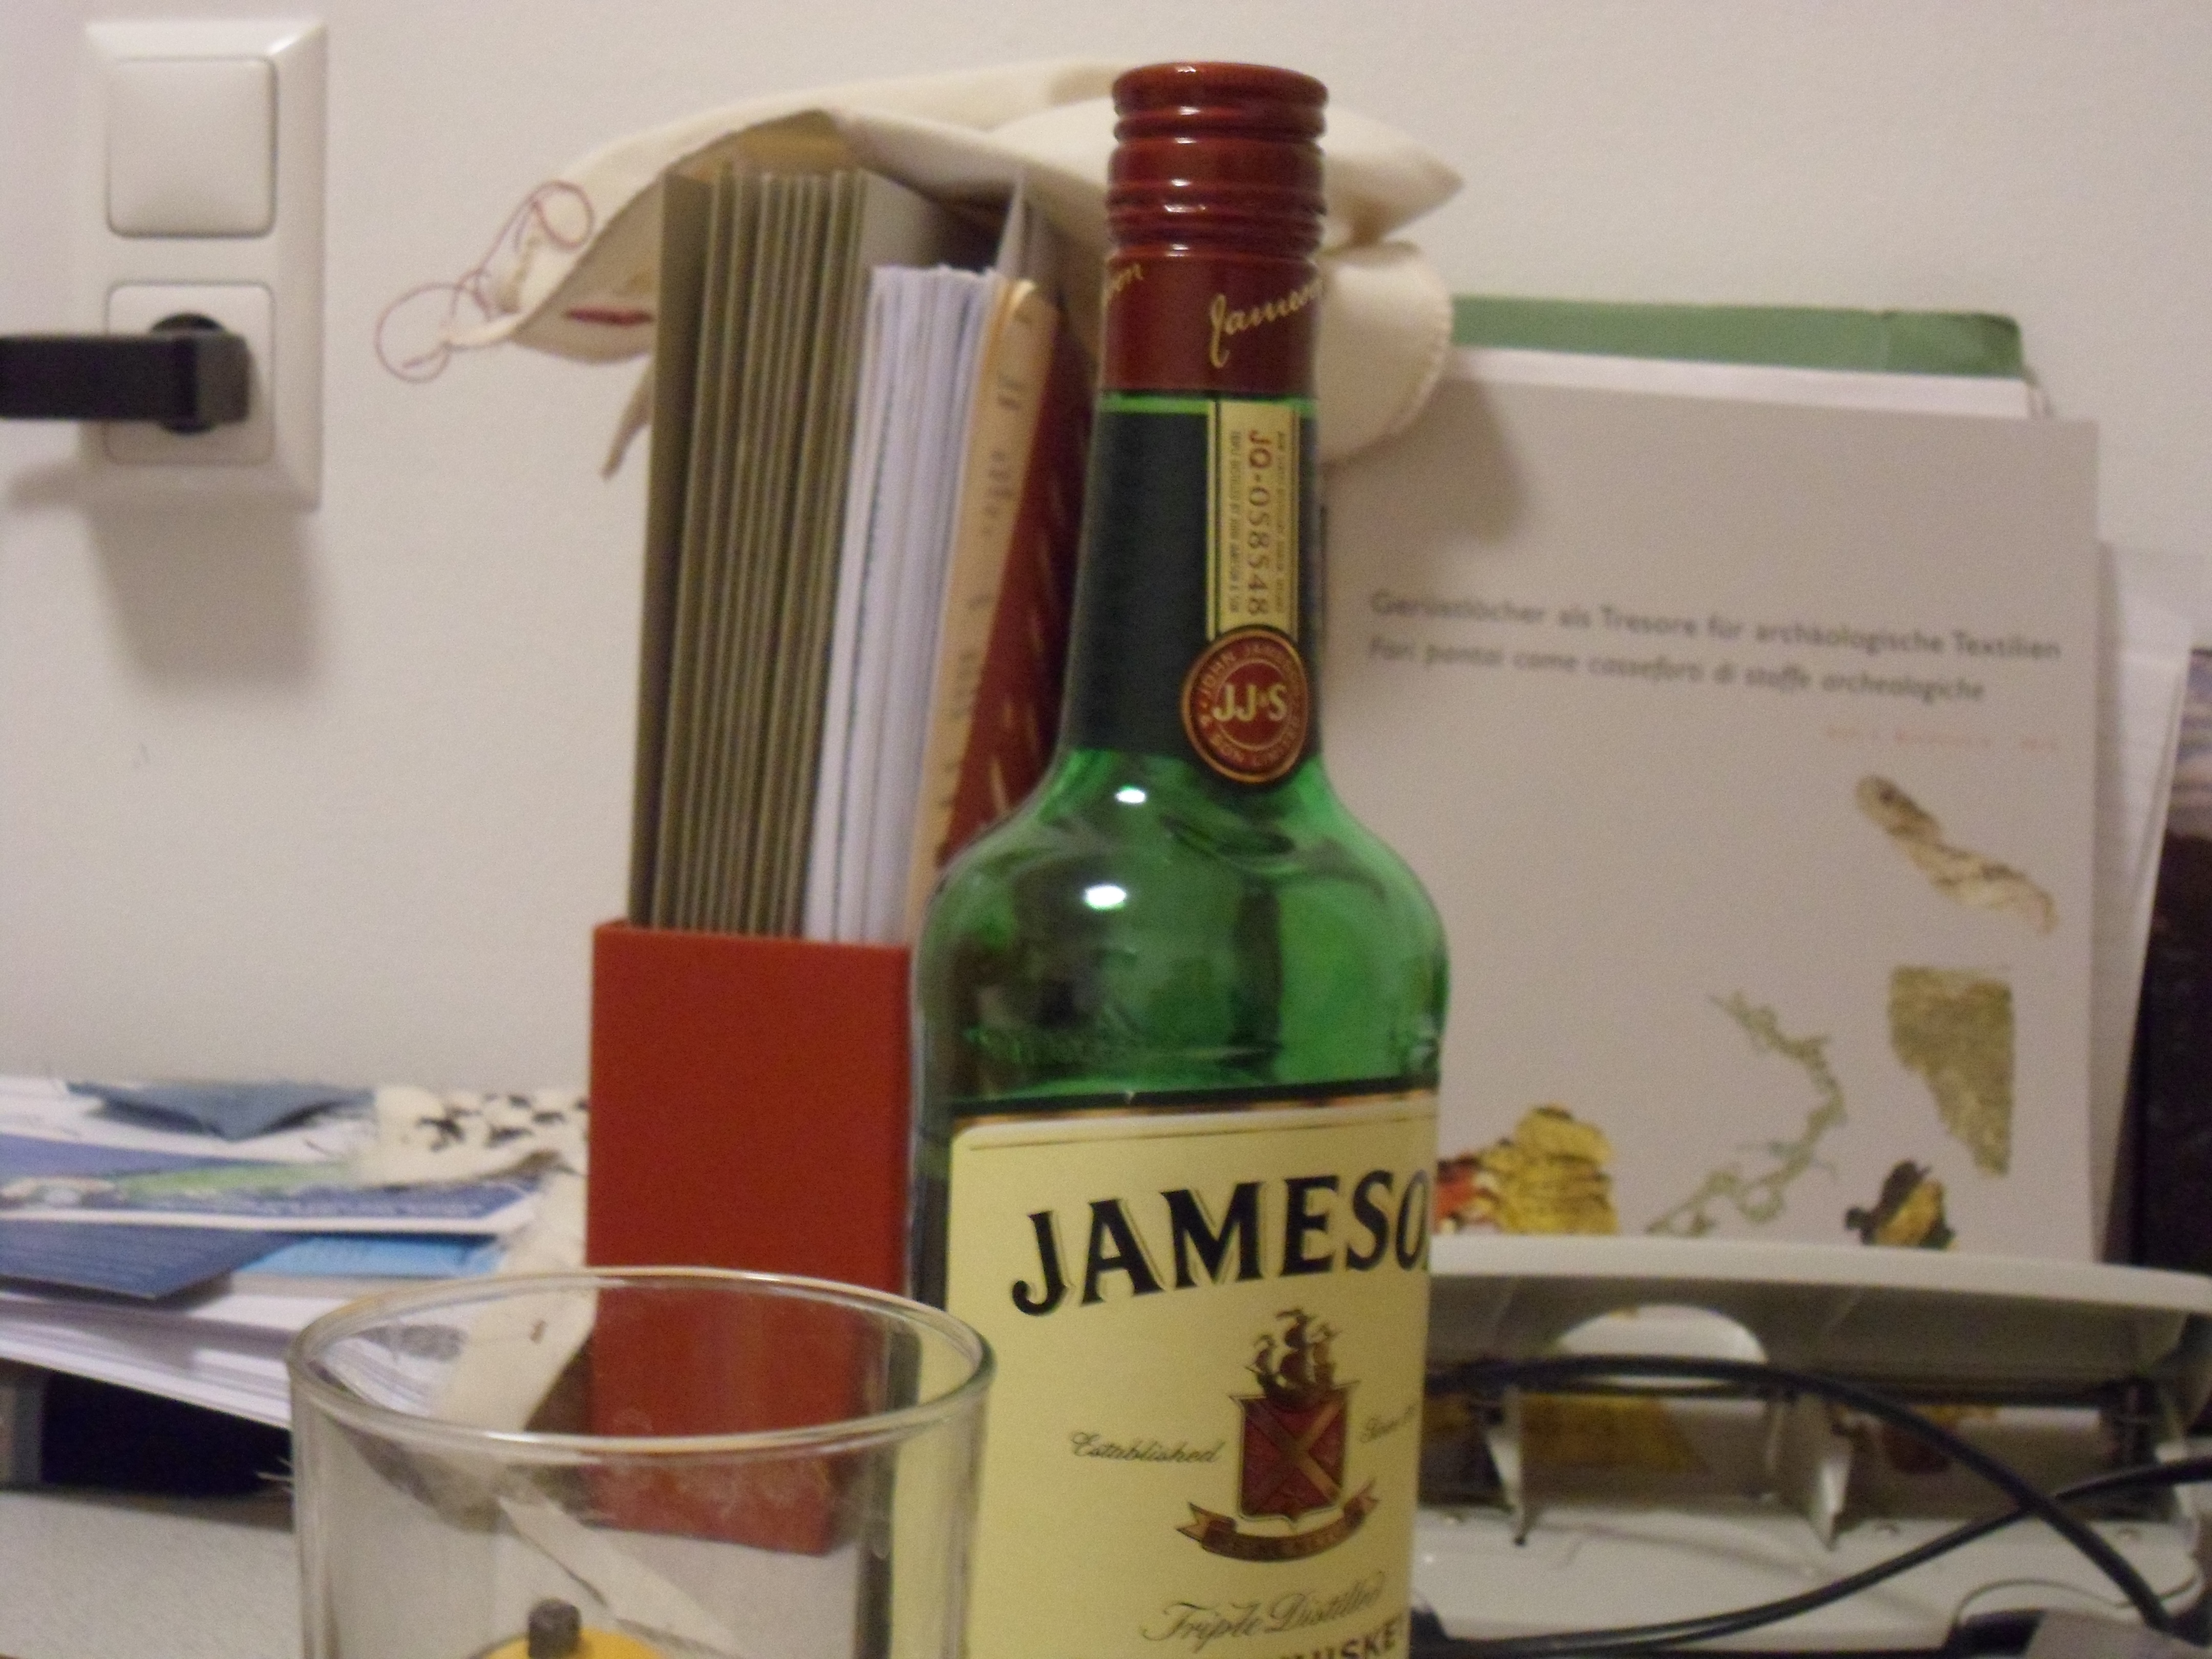 A green glass bottle of whiskey, mostly full, on a cluttered desktop